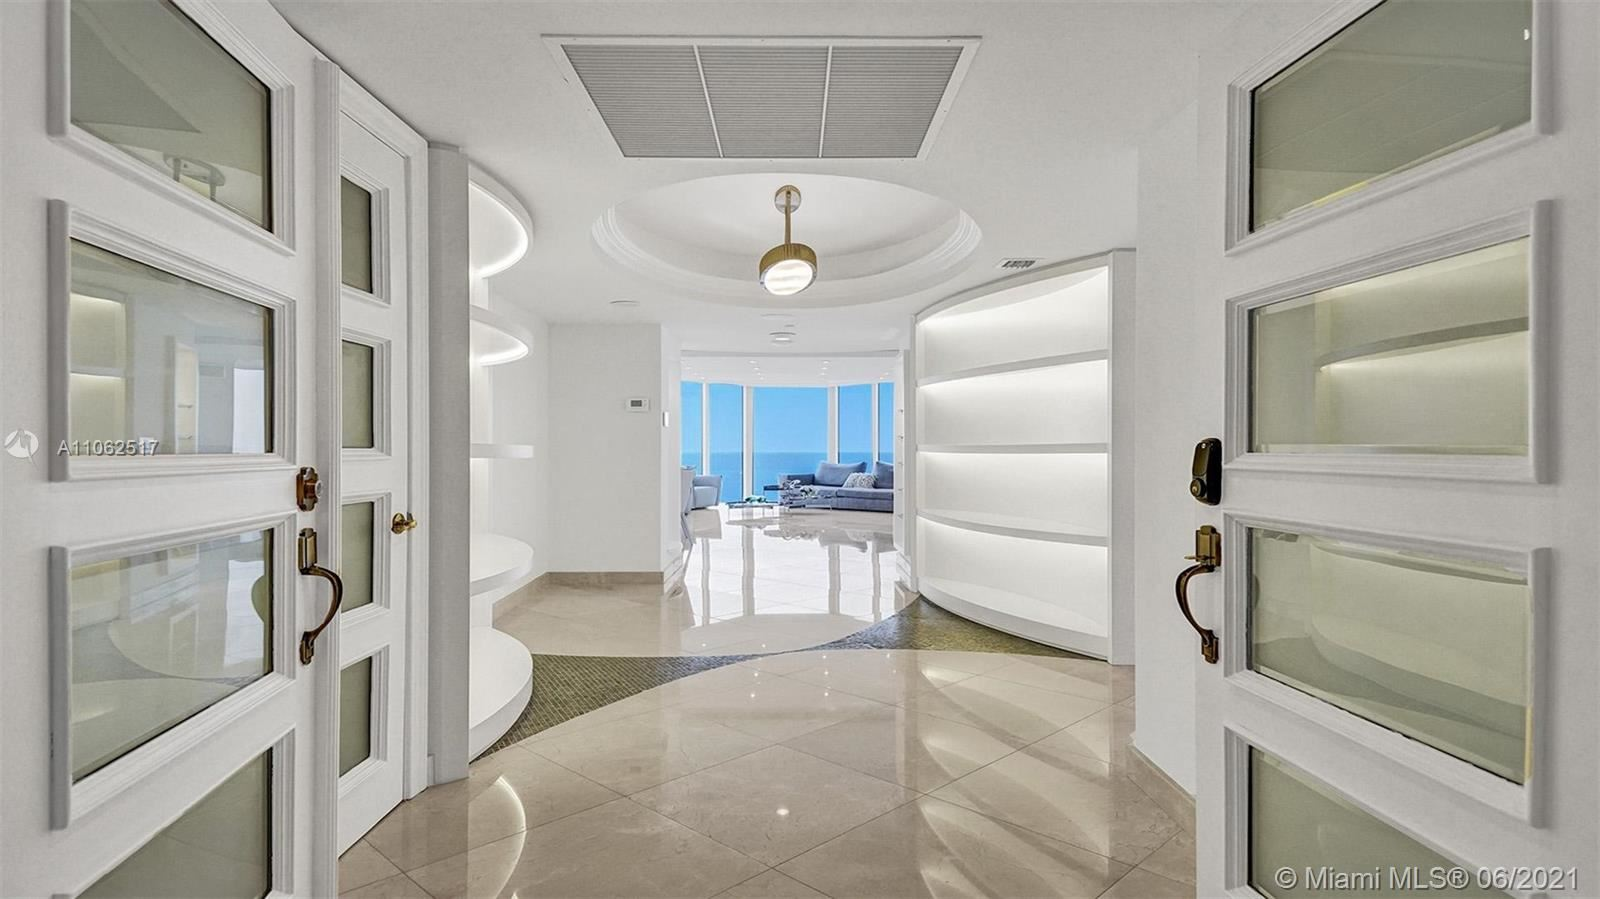 19111 Collins Ave #3808, Sunny Isles, FL 33160 - #: A11062517